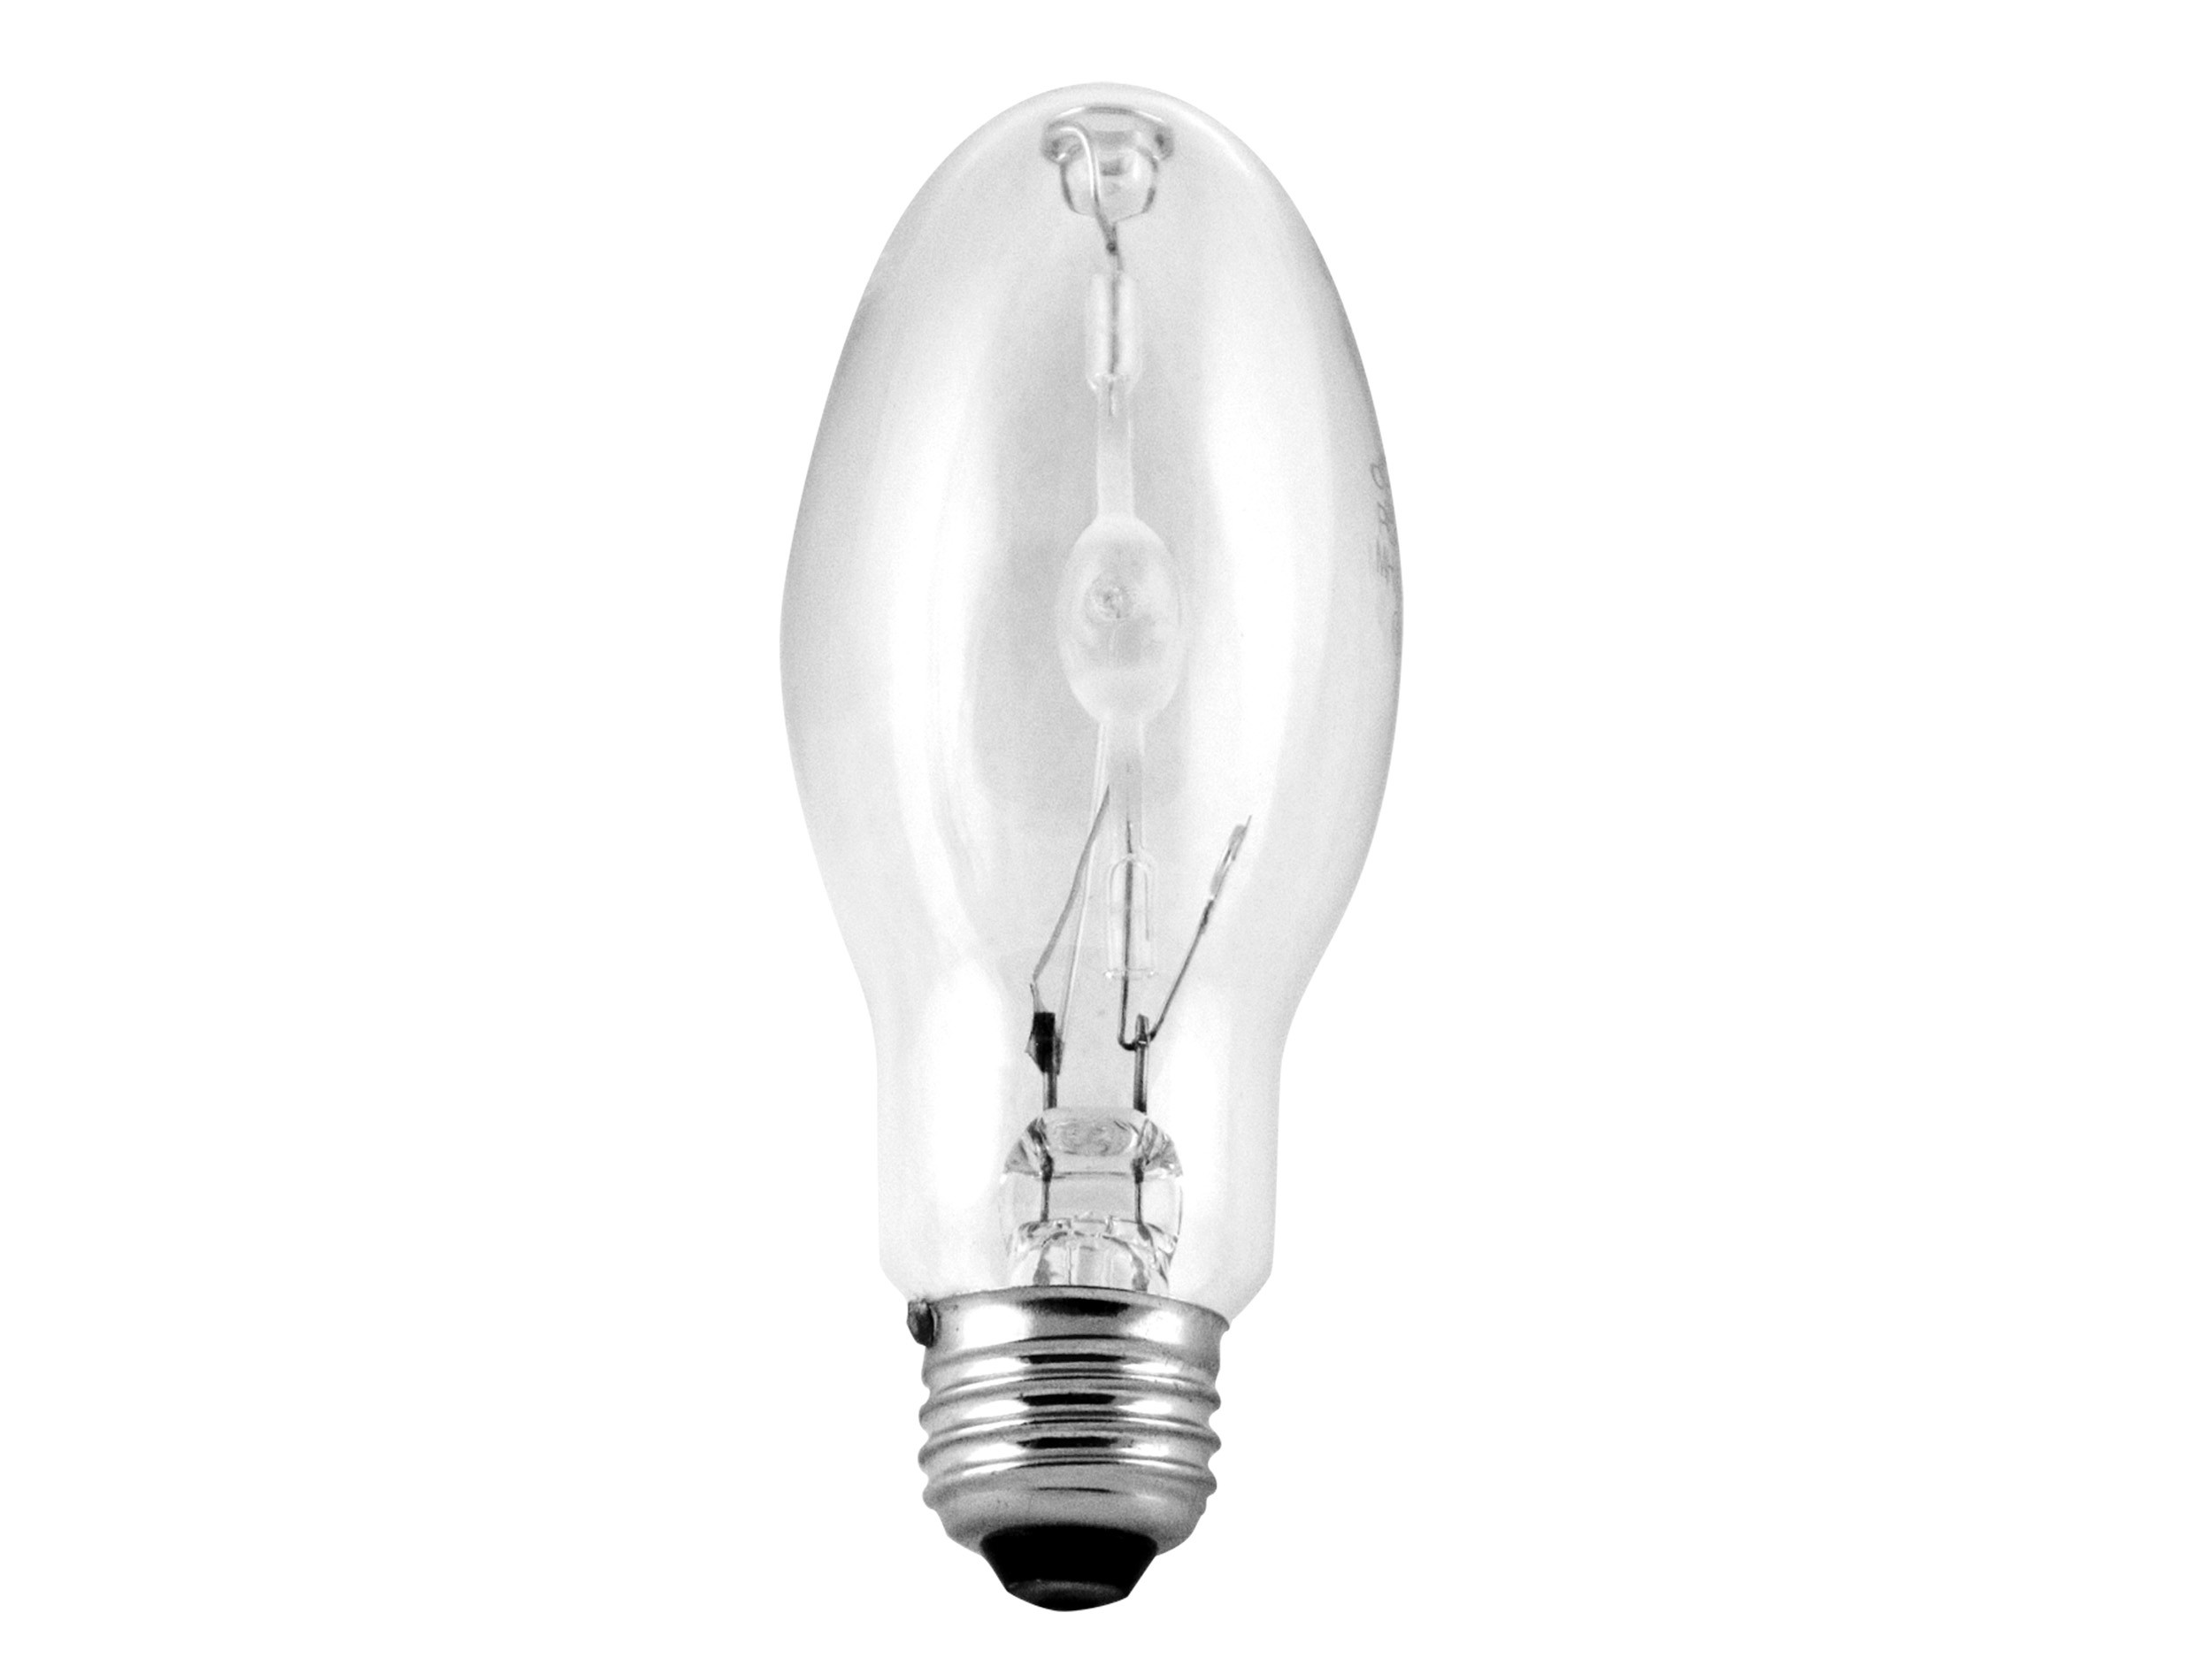 lamp business efficient lumen and blunt watt find at lighting industrial construction tip online clear crystal products ge brand energy